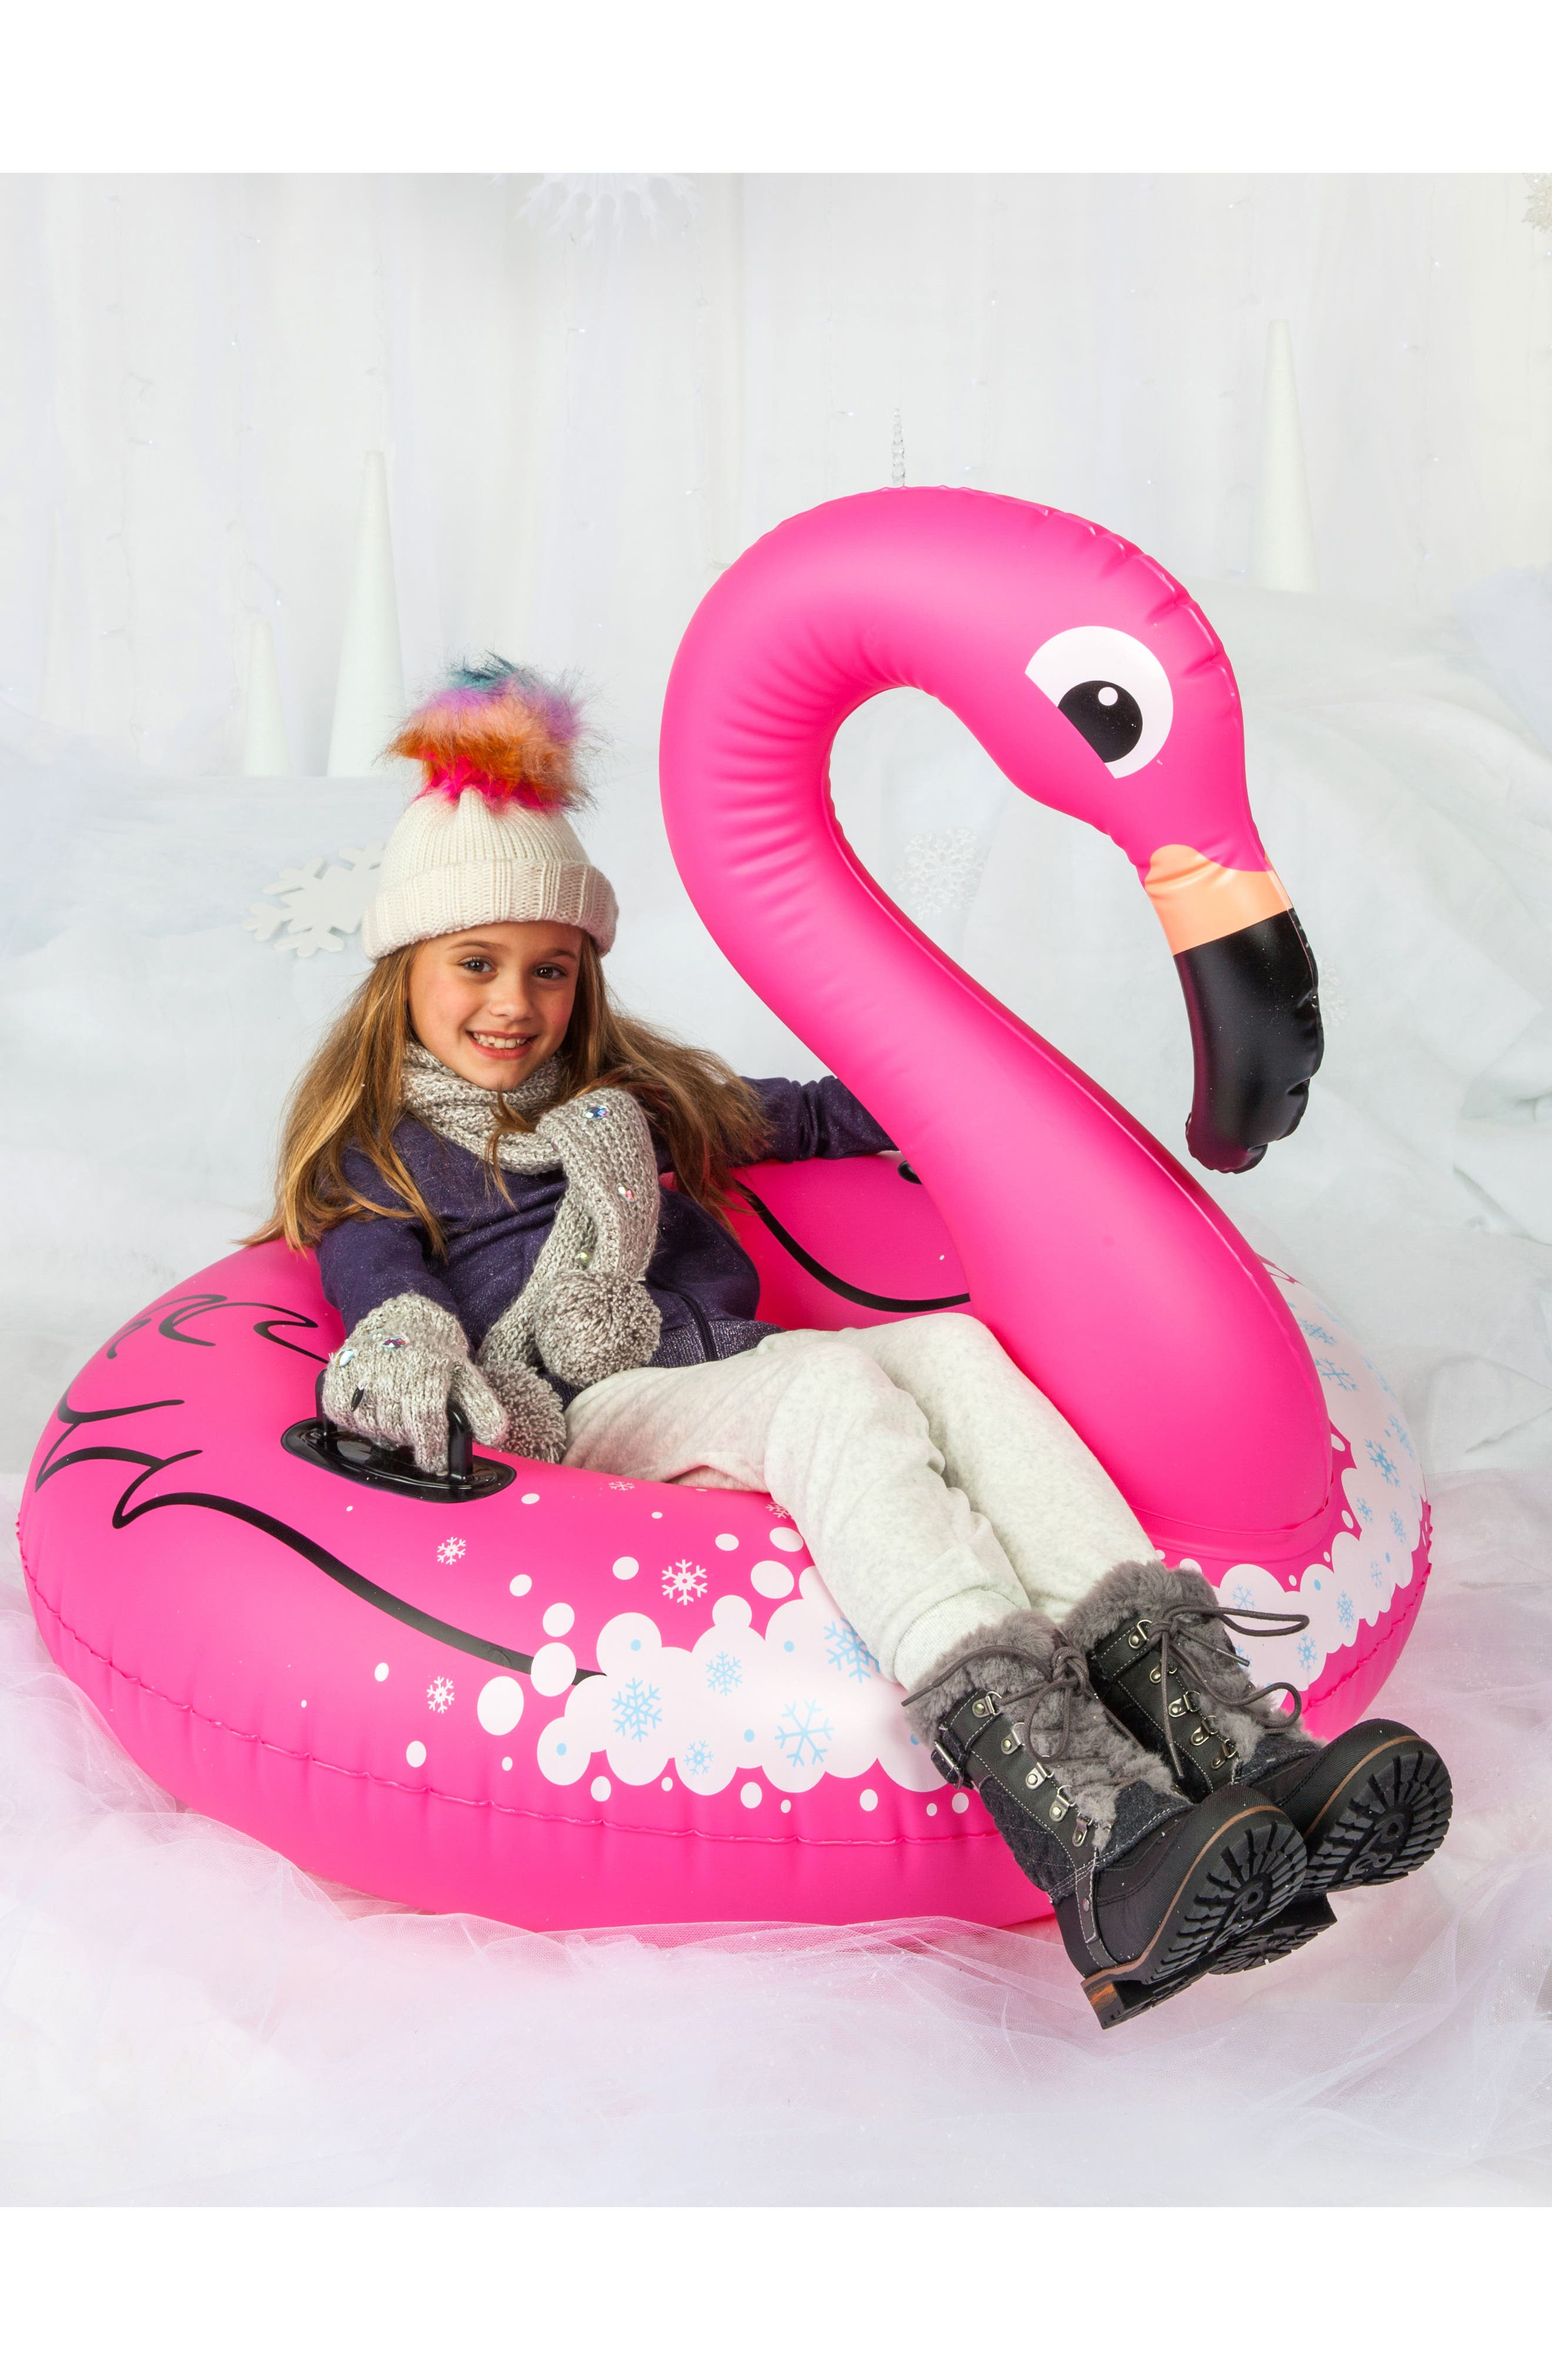 Winter Flamingo Inflatable Snow Tube,                             Alternate thumbnail 4, color,                             670